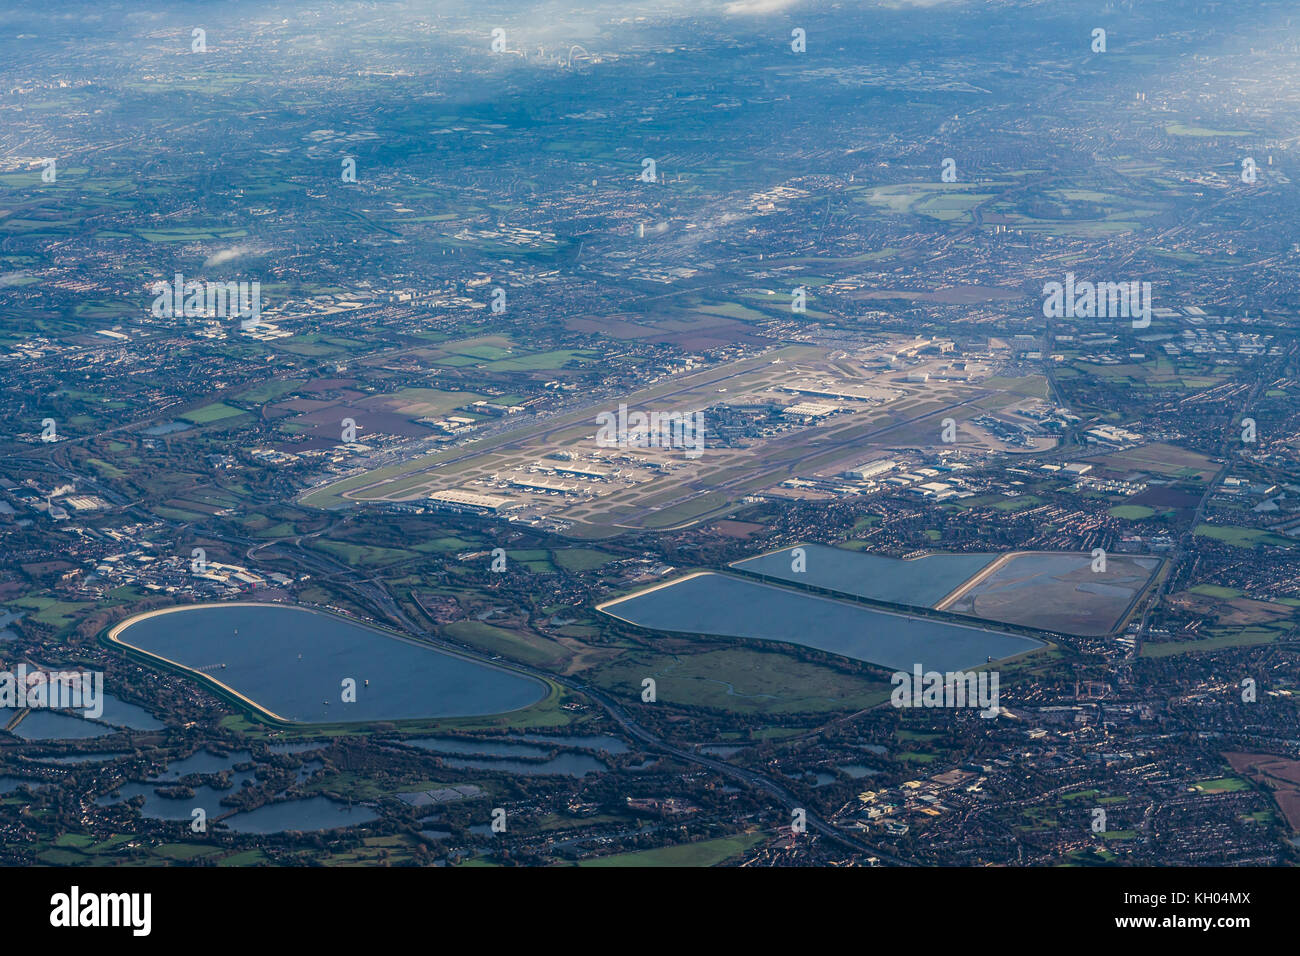 Aerial view of London Heathrow airport looking from the SW. - Stock Image